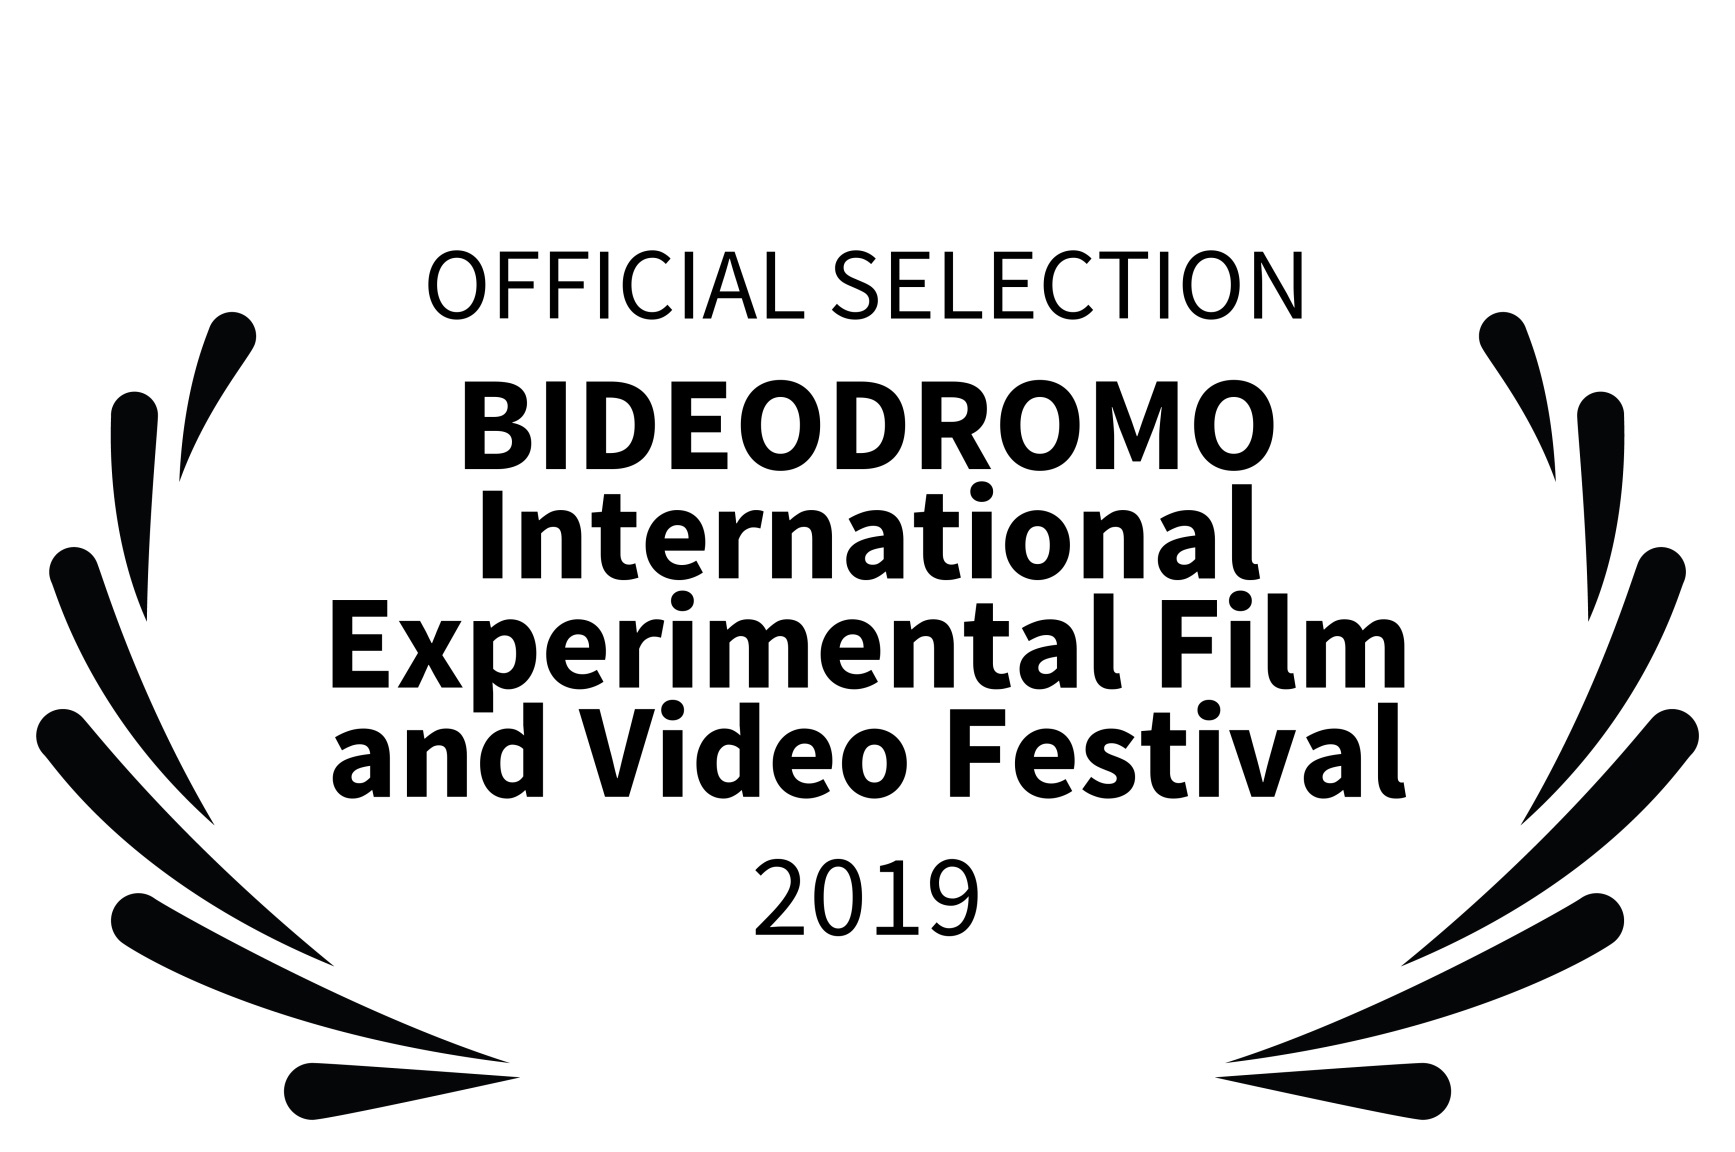 OFFICIAL SELECTION - BIDEODROMO International Experimental Film and Video Festival - 2019 (1) copy.jpg